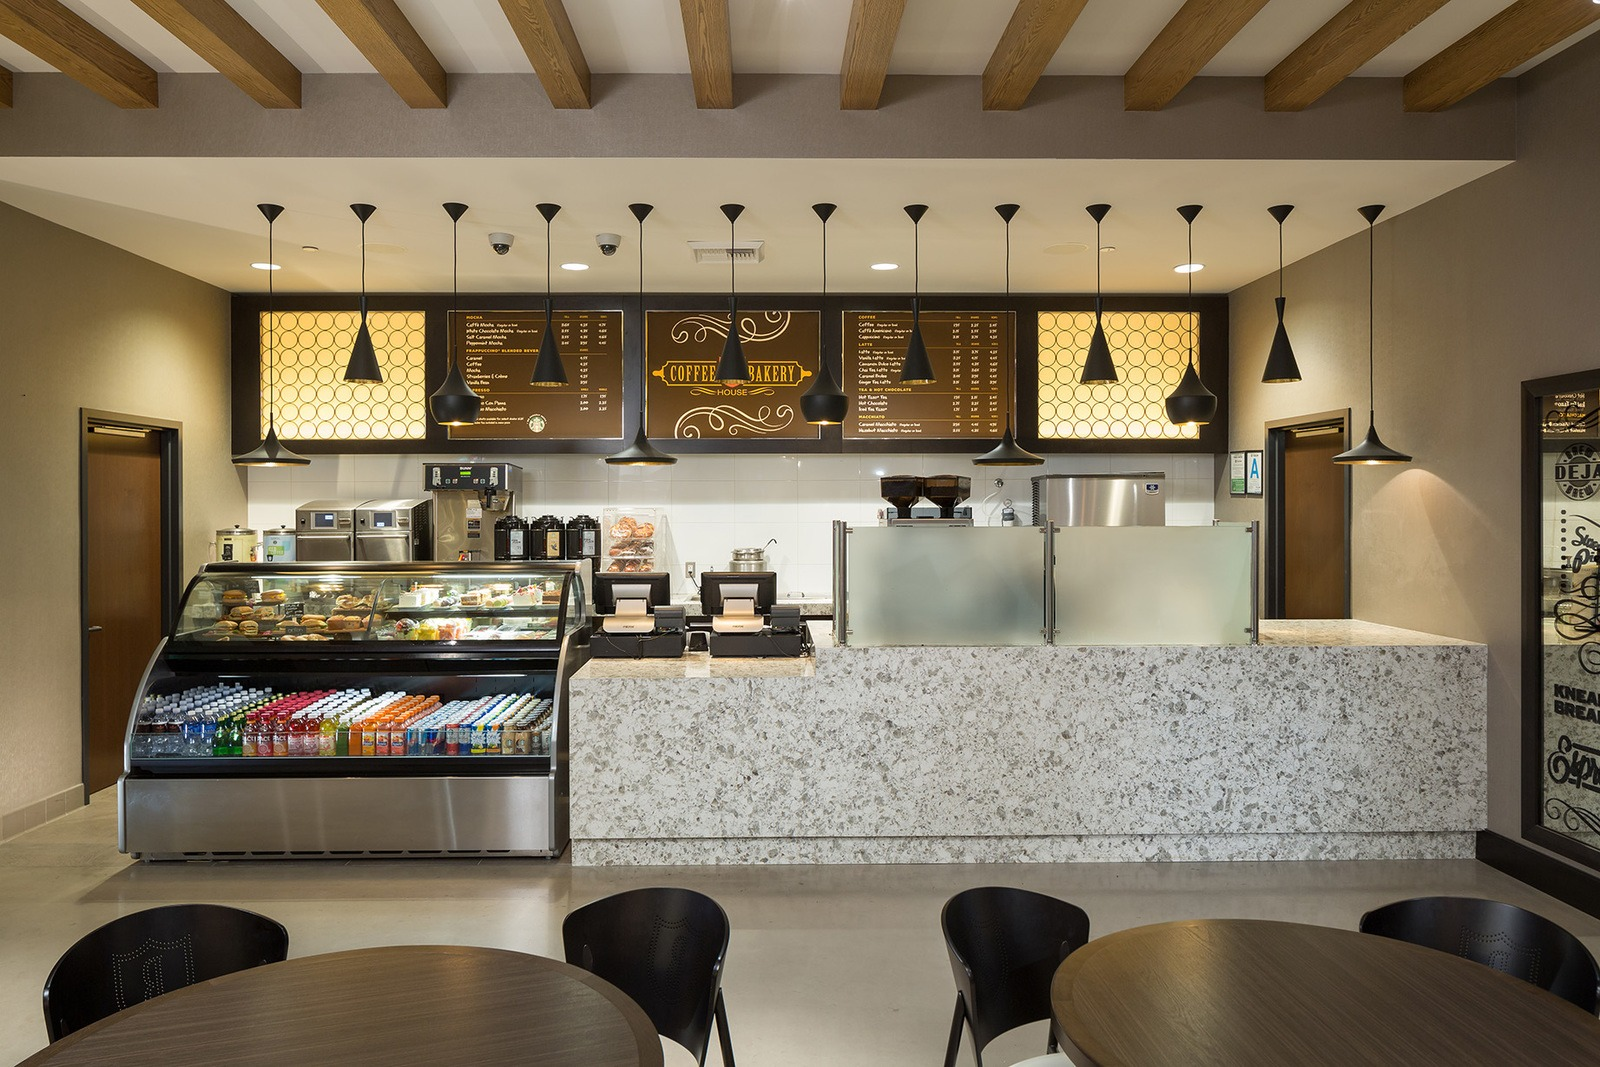 coffee_bakery_counter